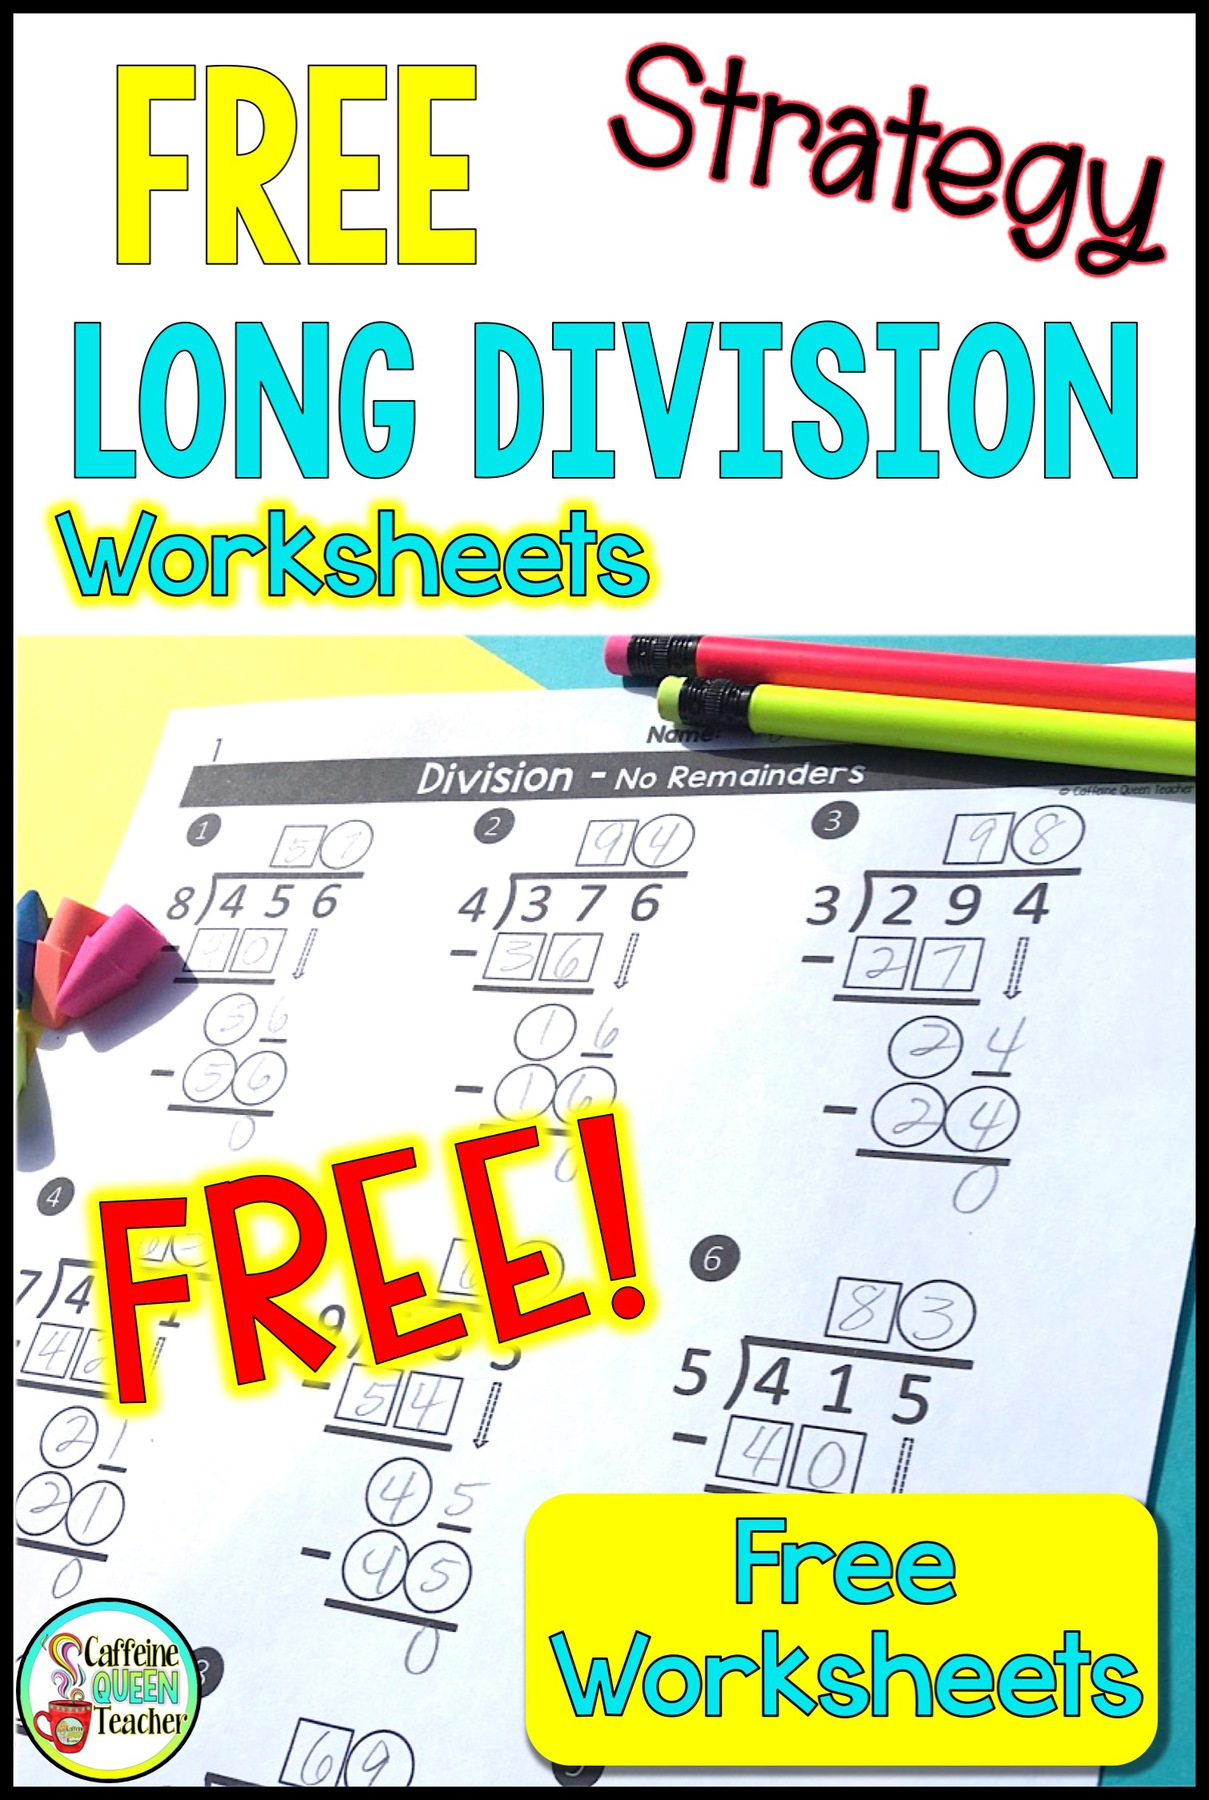 Differentiated Long Division Worksheets for FREE - Caffeine Queen Teacher [ 1800 x 1209 Pixel ]